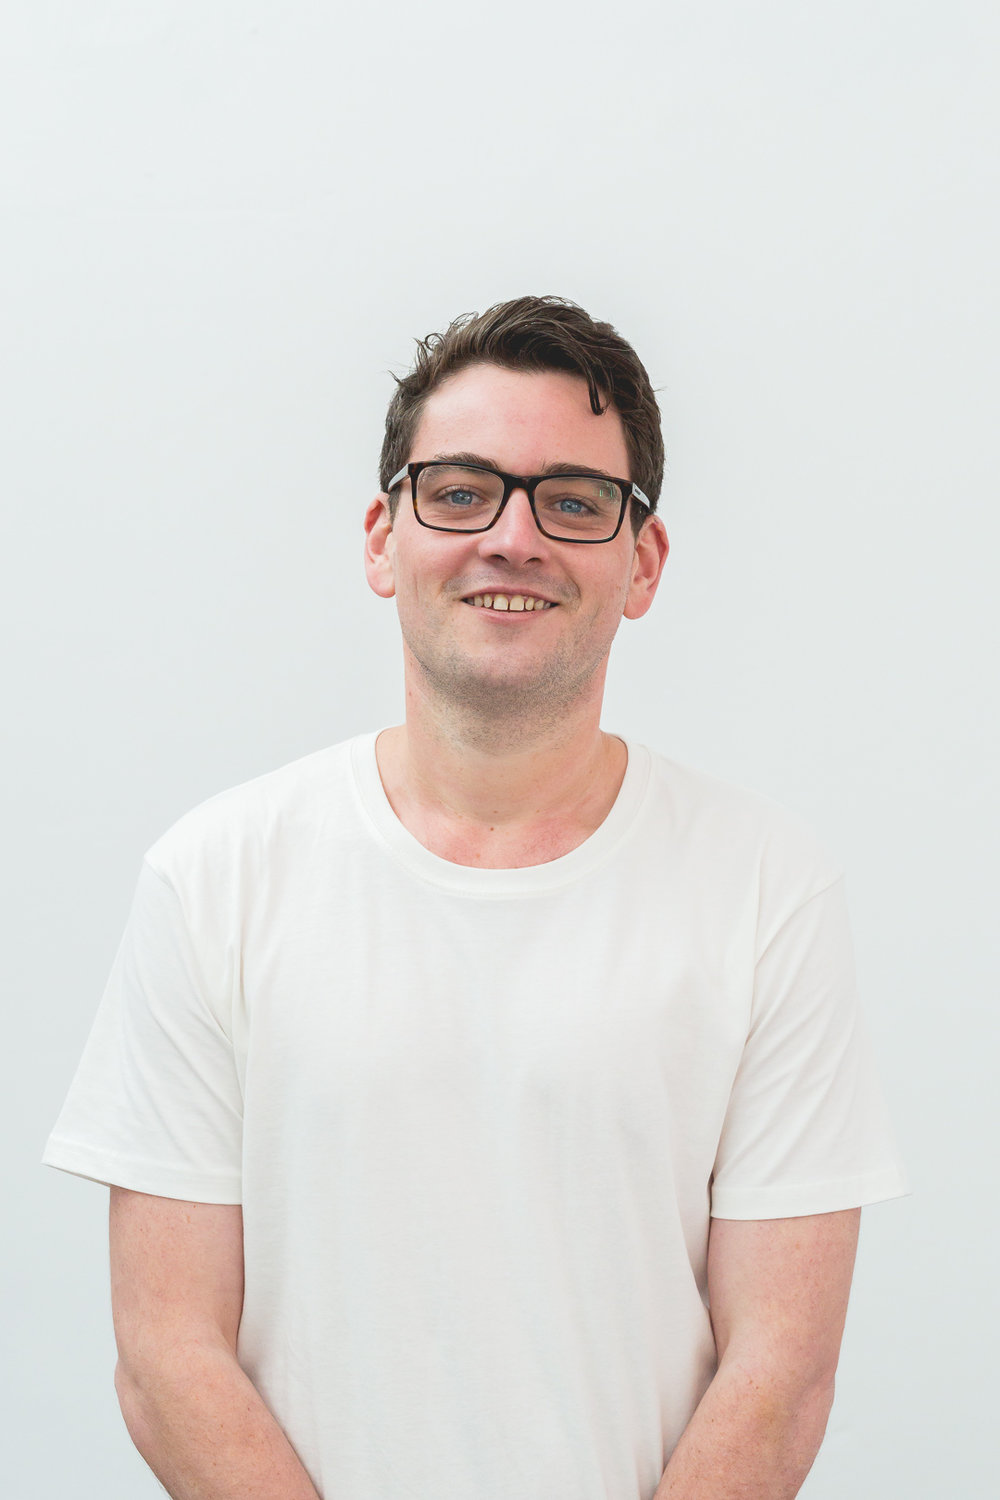 Hi,  - I'm Max. I write, I make websites that the world probably doesn't need, and I have a penchant for contact sports. I'm currently based in Sydney and I work in digital and social media for Present Company, you can find out more about us here. Things I've done previously include: Some PR work, sold a lot of hats, freelance writing, getting paid to break up with people, copywriting, social media management and selling alcohol.I have a knack for making very basic websites (note: I don't know how to code). A few of them have attracted a bit of media attention and I'm happy to share them with you if you're interested. I like interesting: people, opportunities, and ideas. If you or your work ticks any of those boxes, please don't hesitate to get in contact.